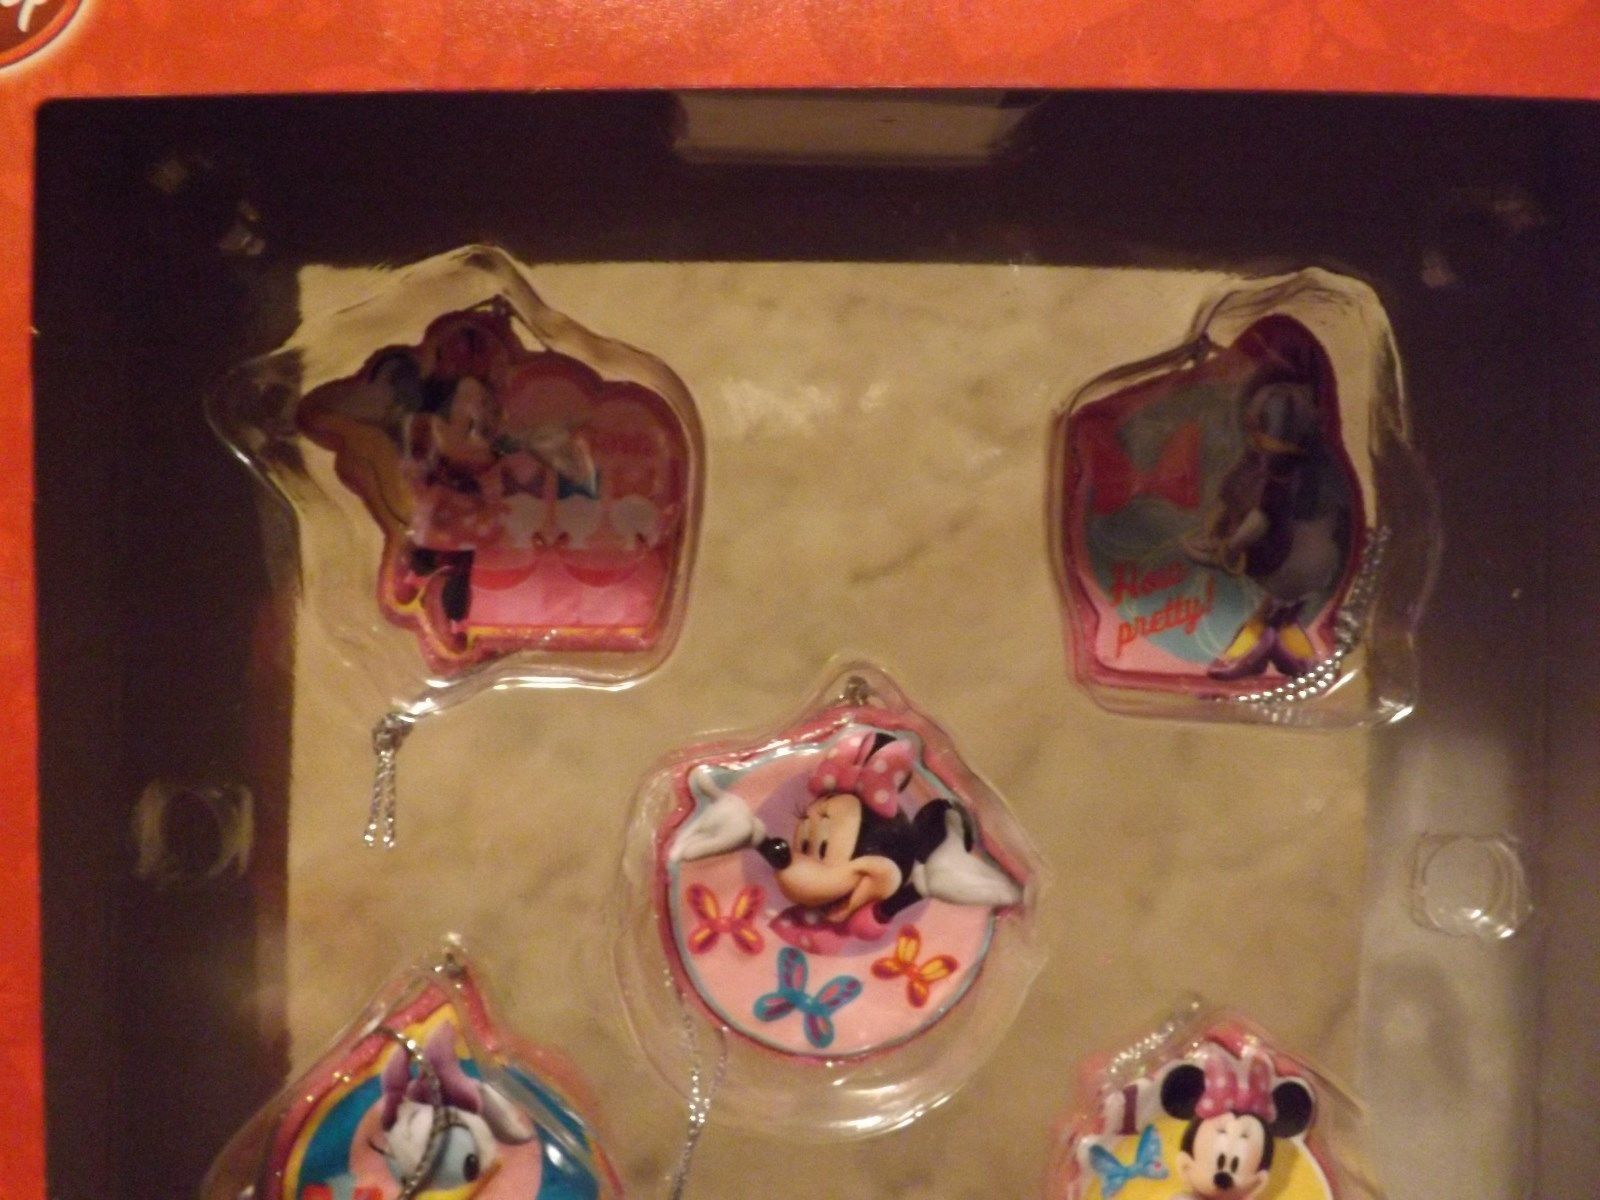 Disney Jr Minnie Bowtique 5 Piece Mini Ornament Set image 2